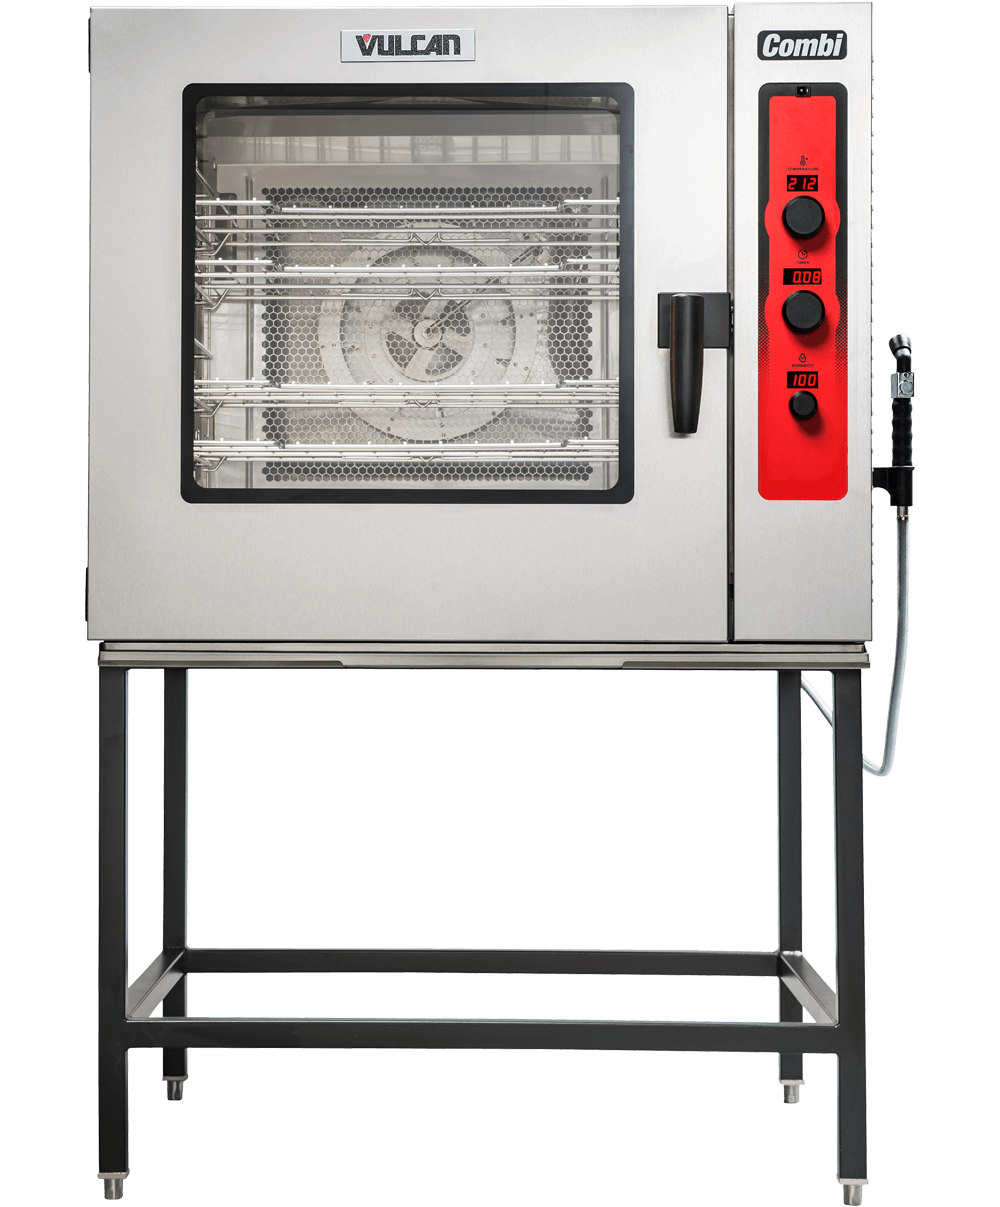 commercial combi overn